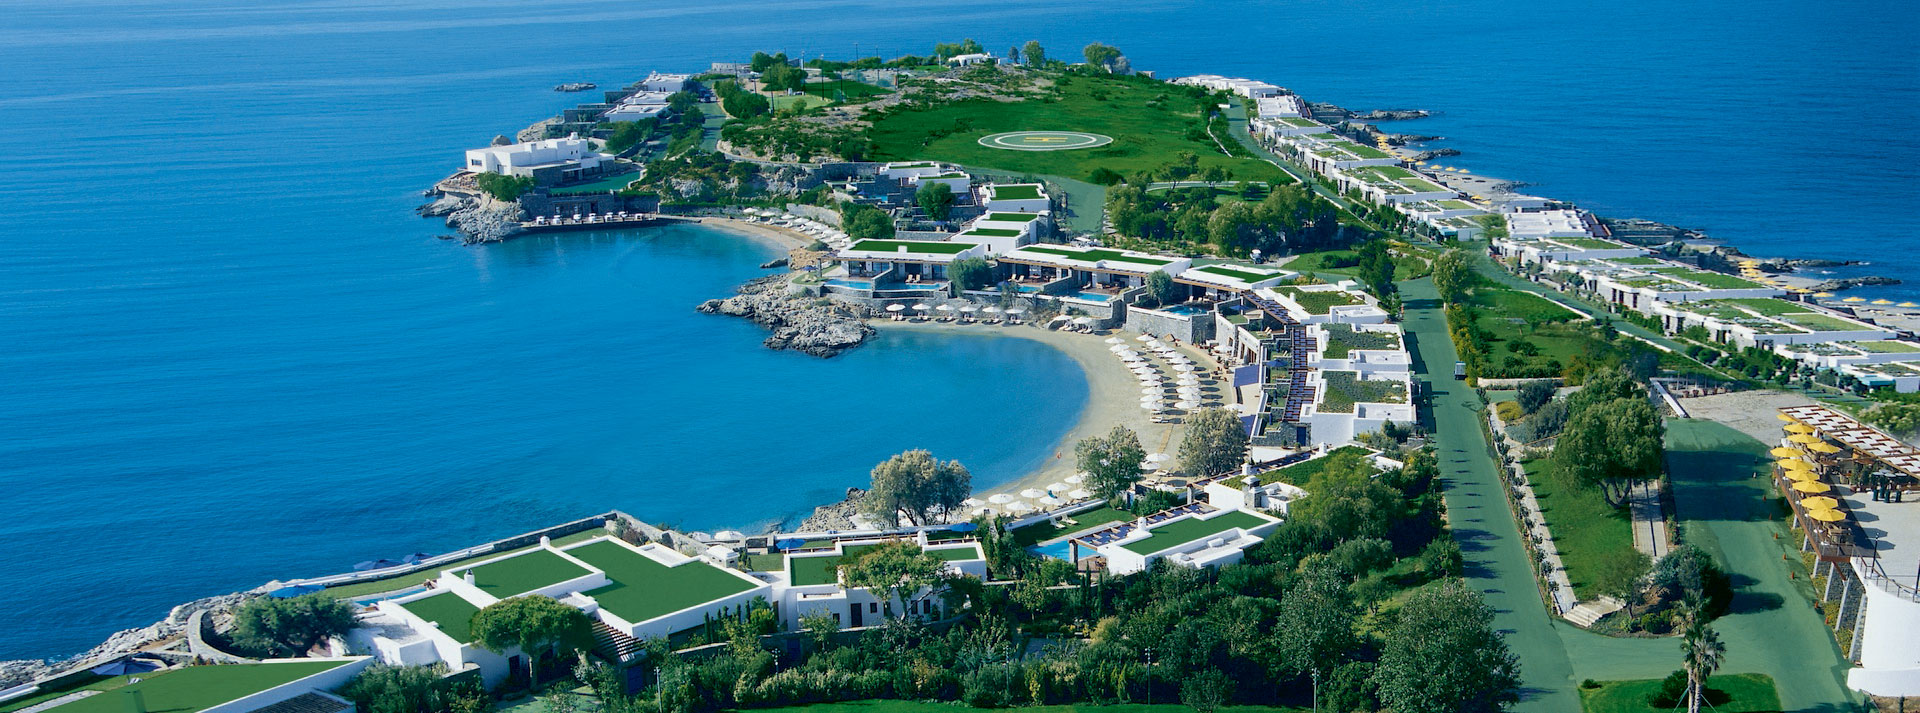 Hotel Grand Resort Lagonissi